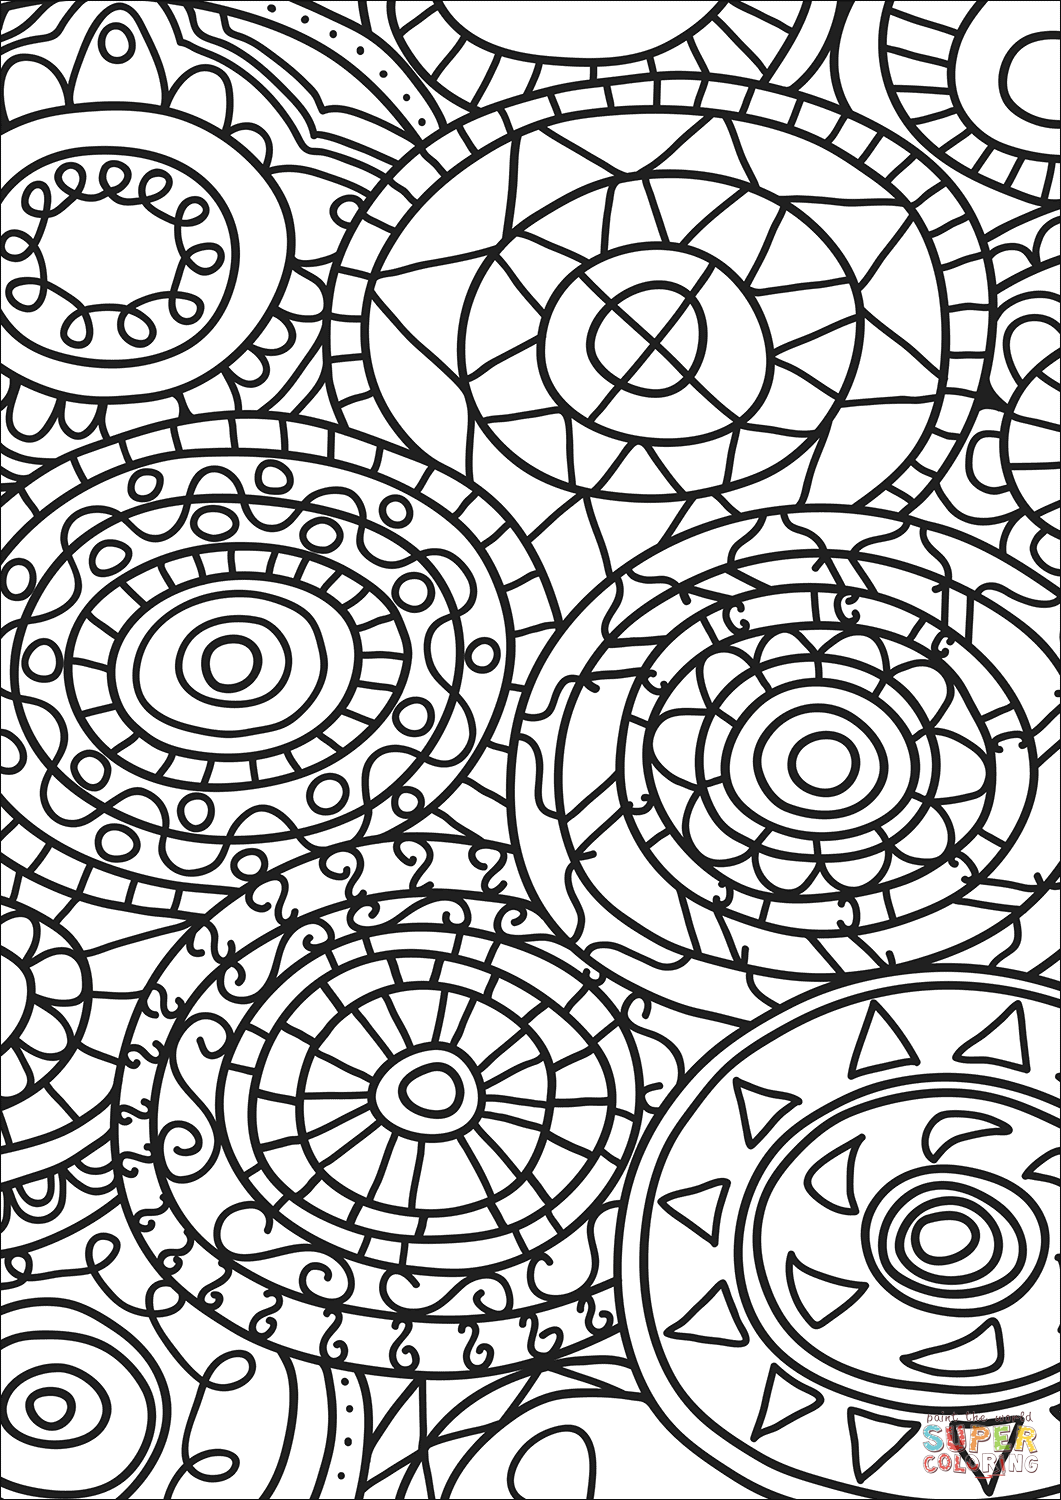 coloring art sheets abstract doodle coloring page free printable coloring pages sheets art coloring